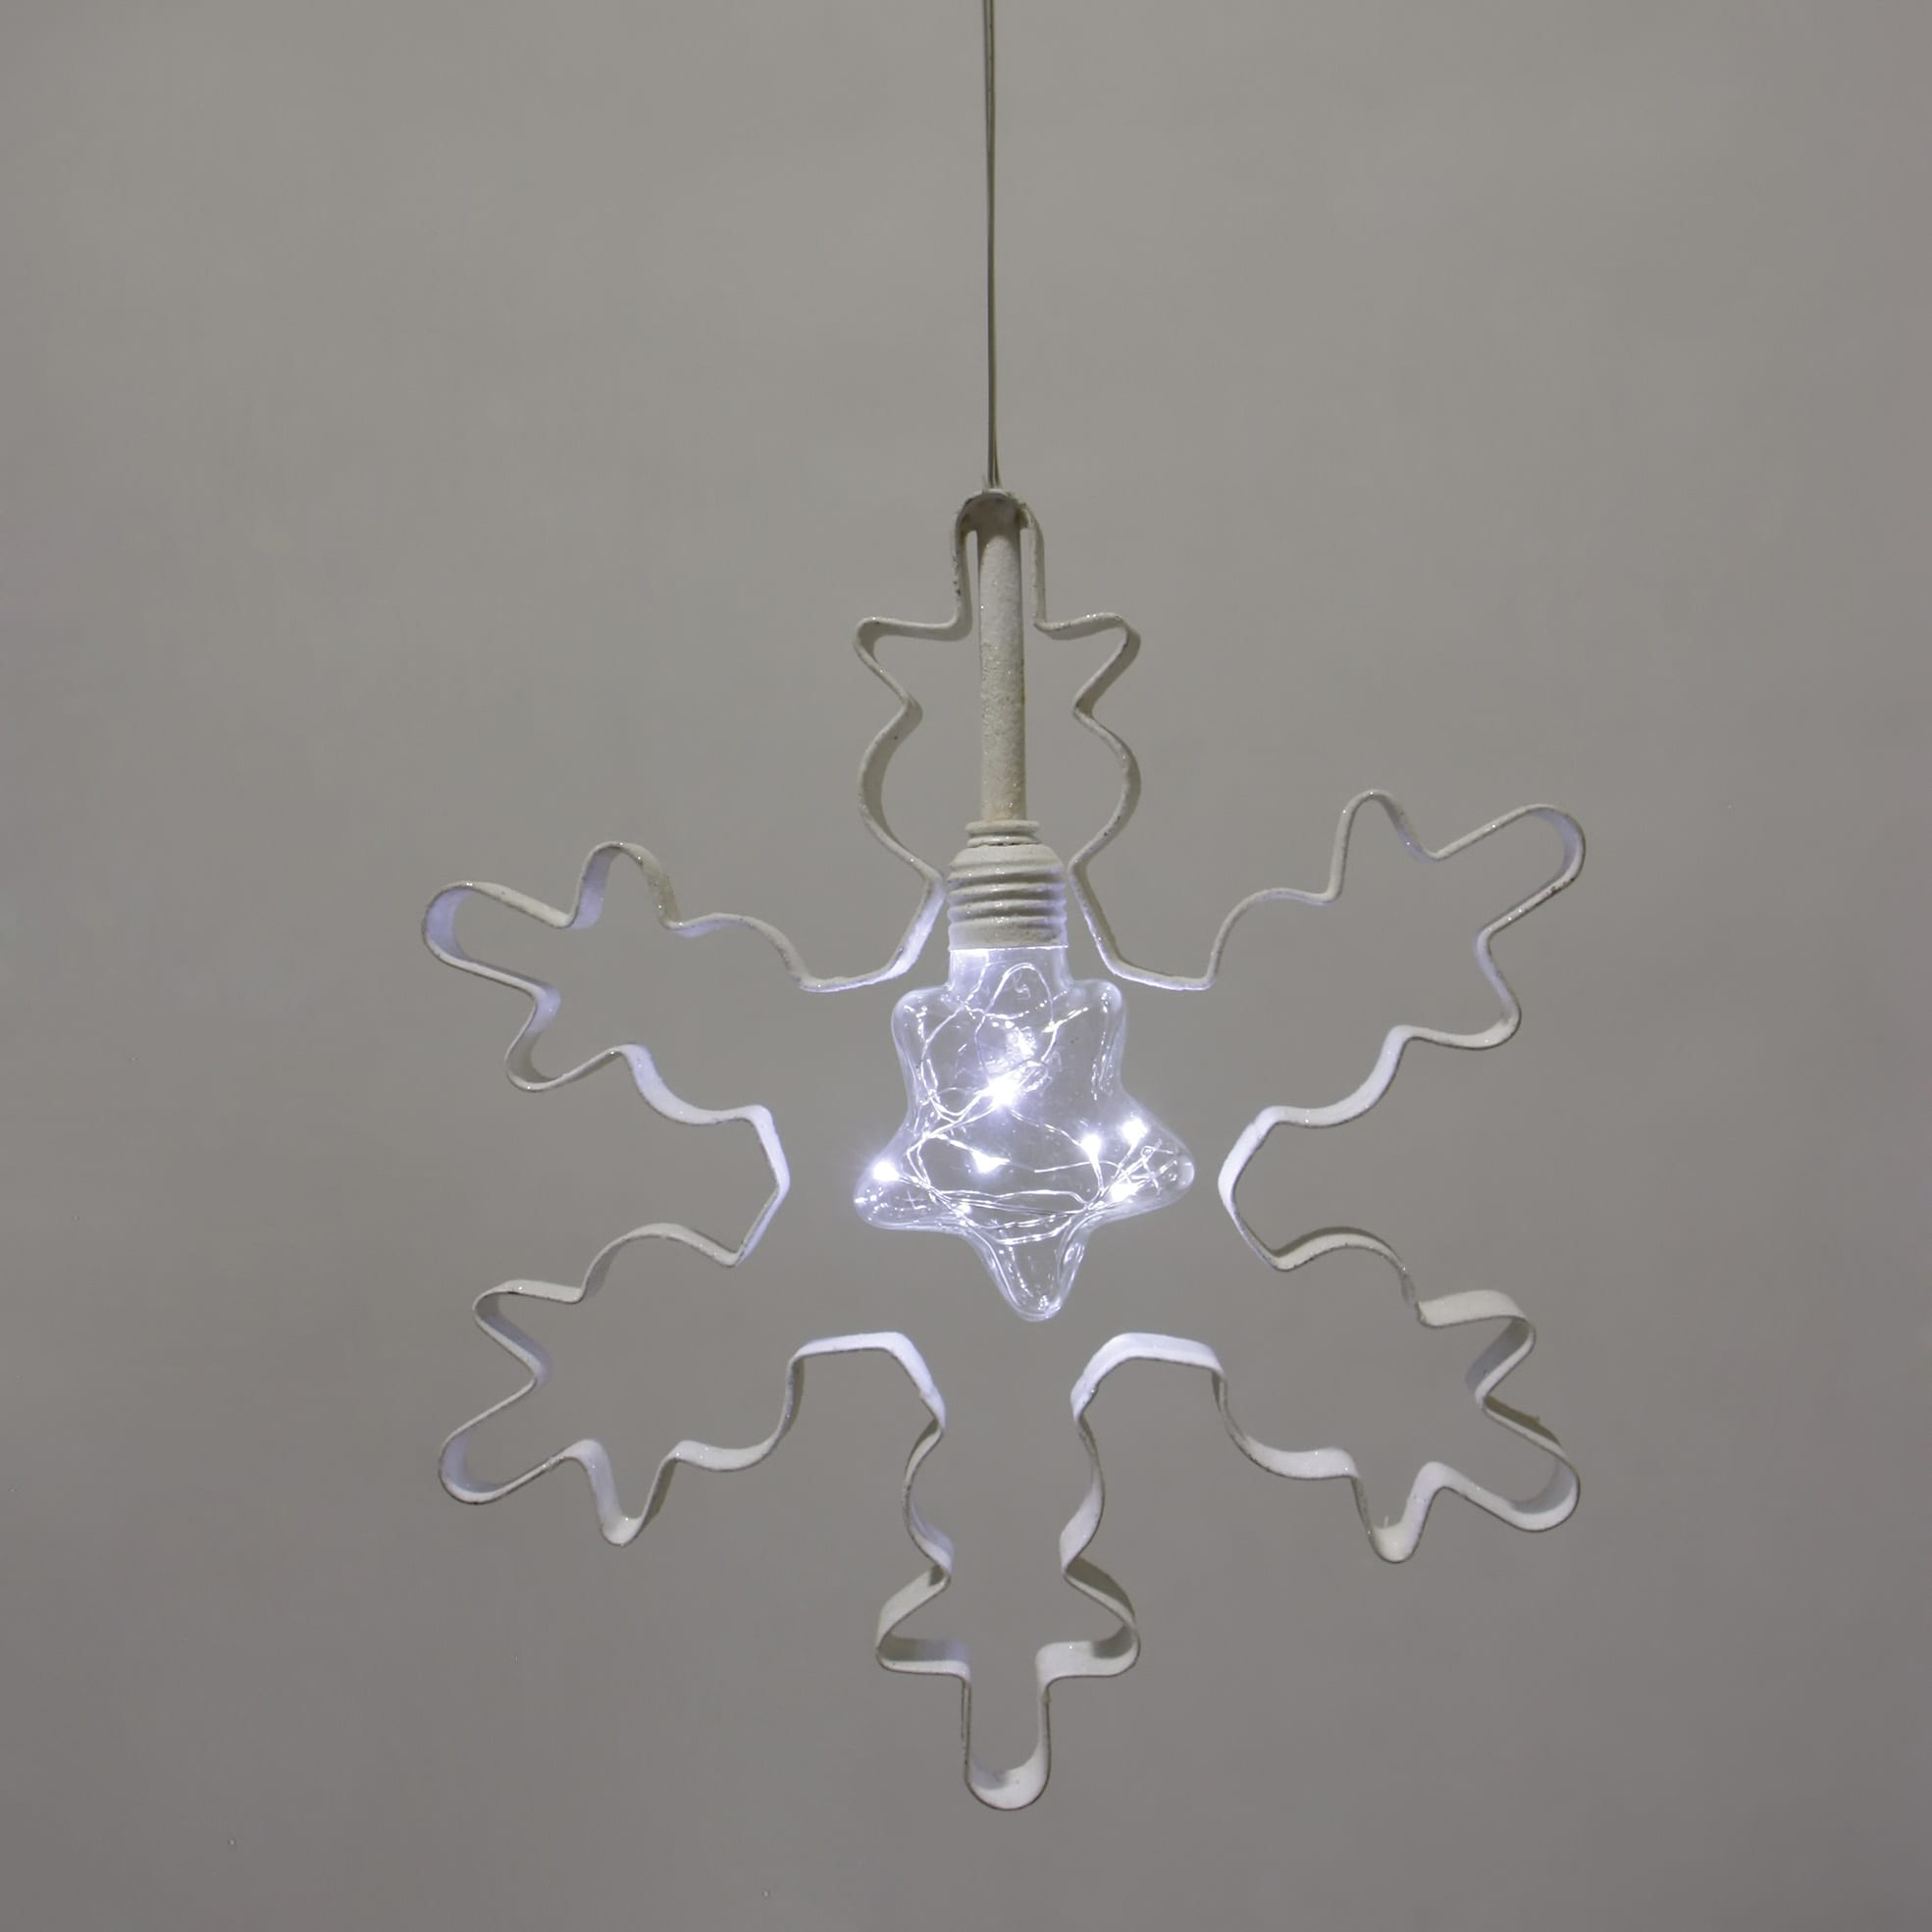 Decorative Hanging Lighting  MYHH98208 Featured Image